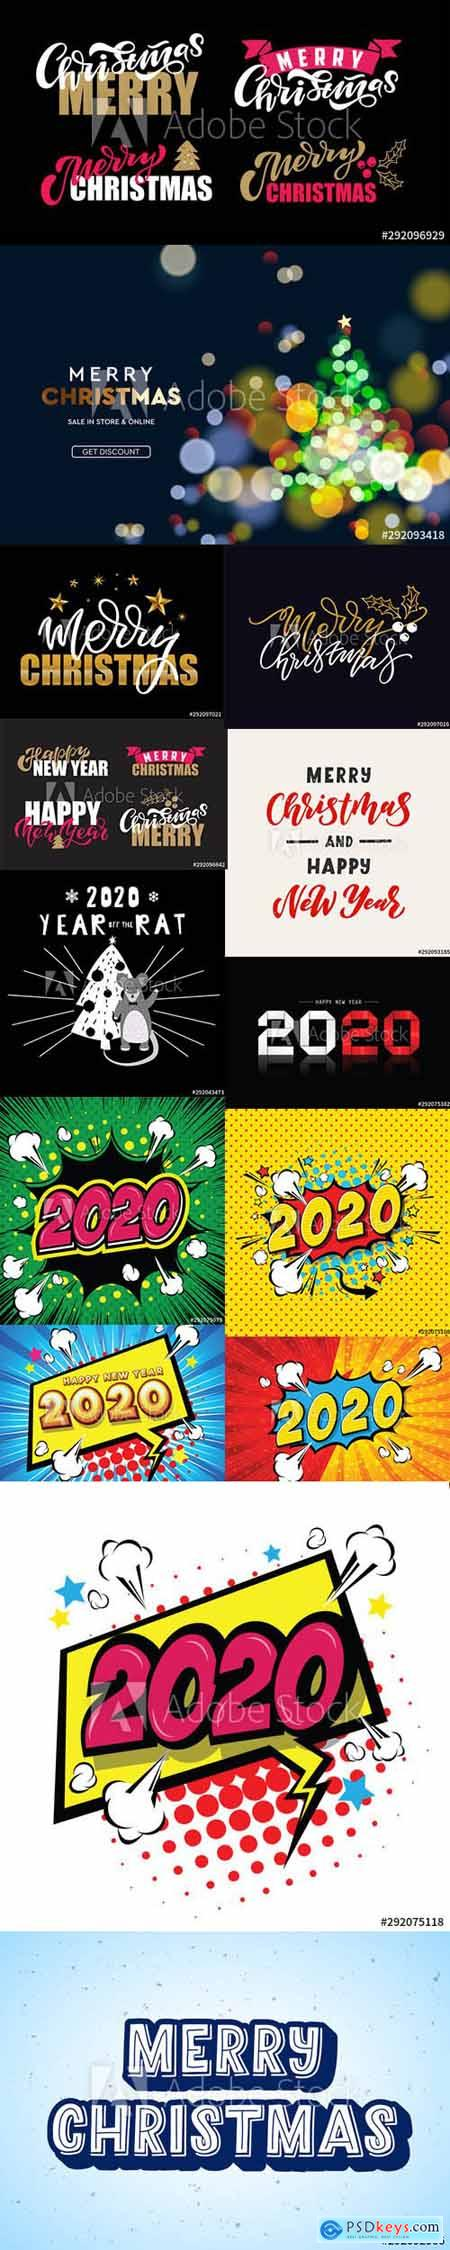 Merry Christmas and Happy New Year 2020 Illustrations Vector Set 7